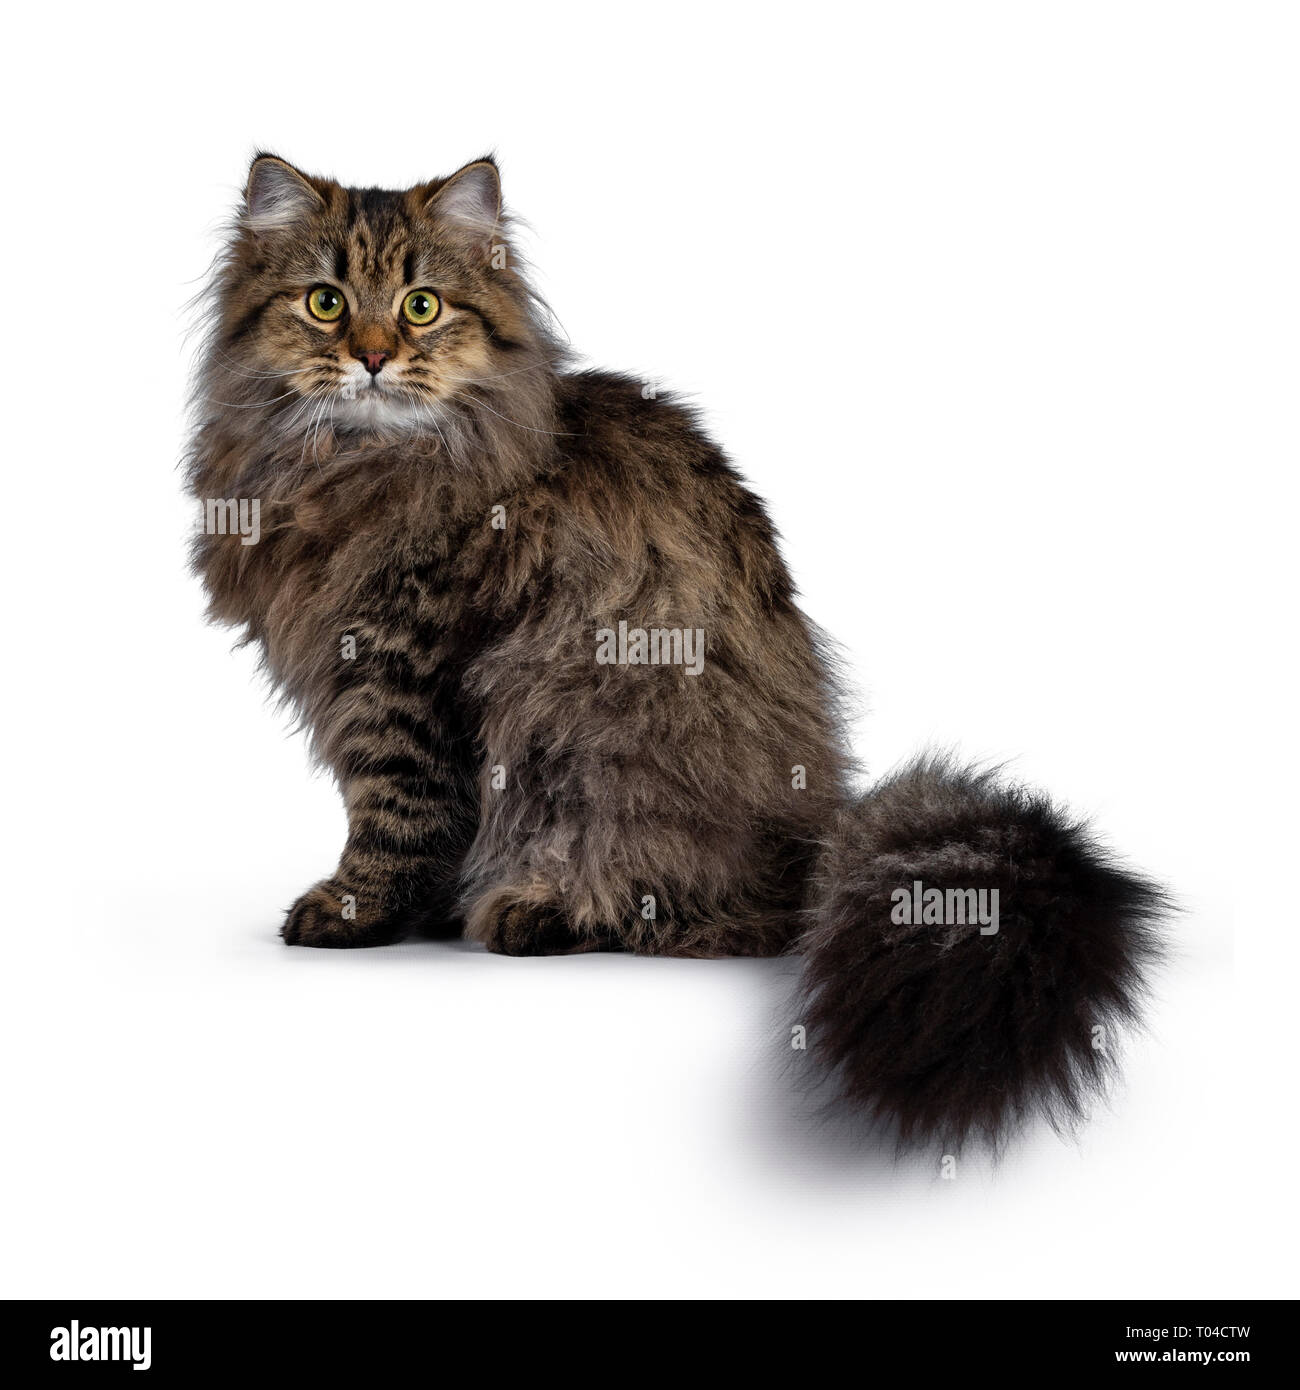 87b37c0293 Cat Looking Down Stock Photos   Cat Looking Down Stock Images - Page ...